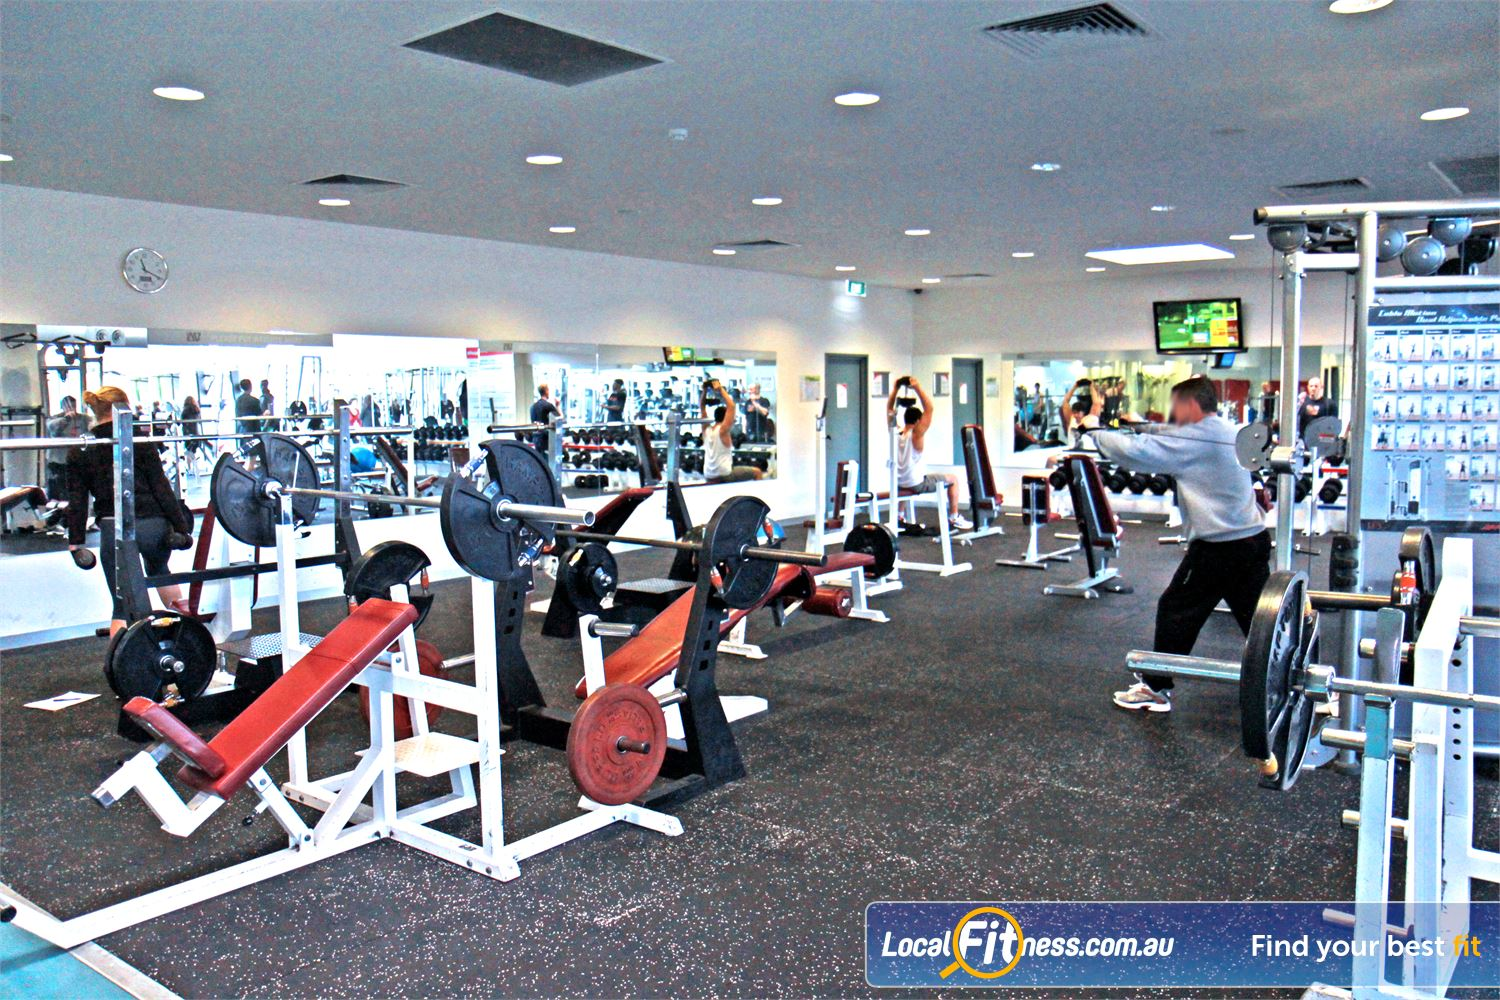 Ascot Vale Leisure Centre Ascot Vale Fully equipped Ascot Vale free-weights area.